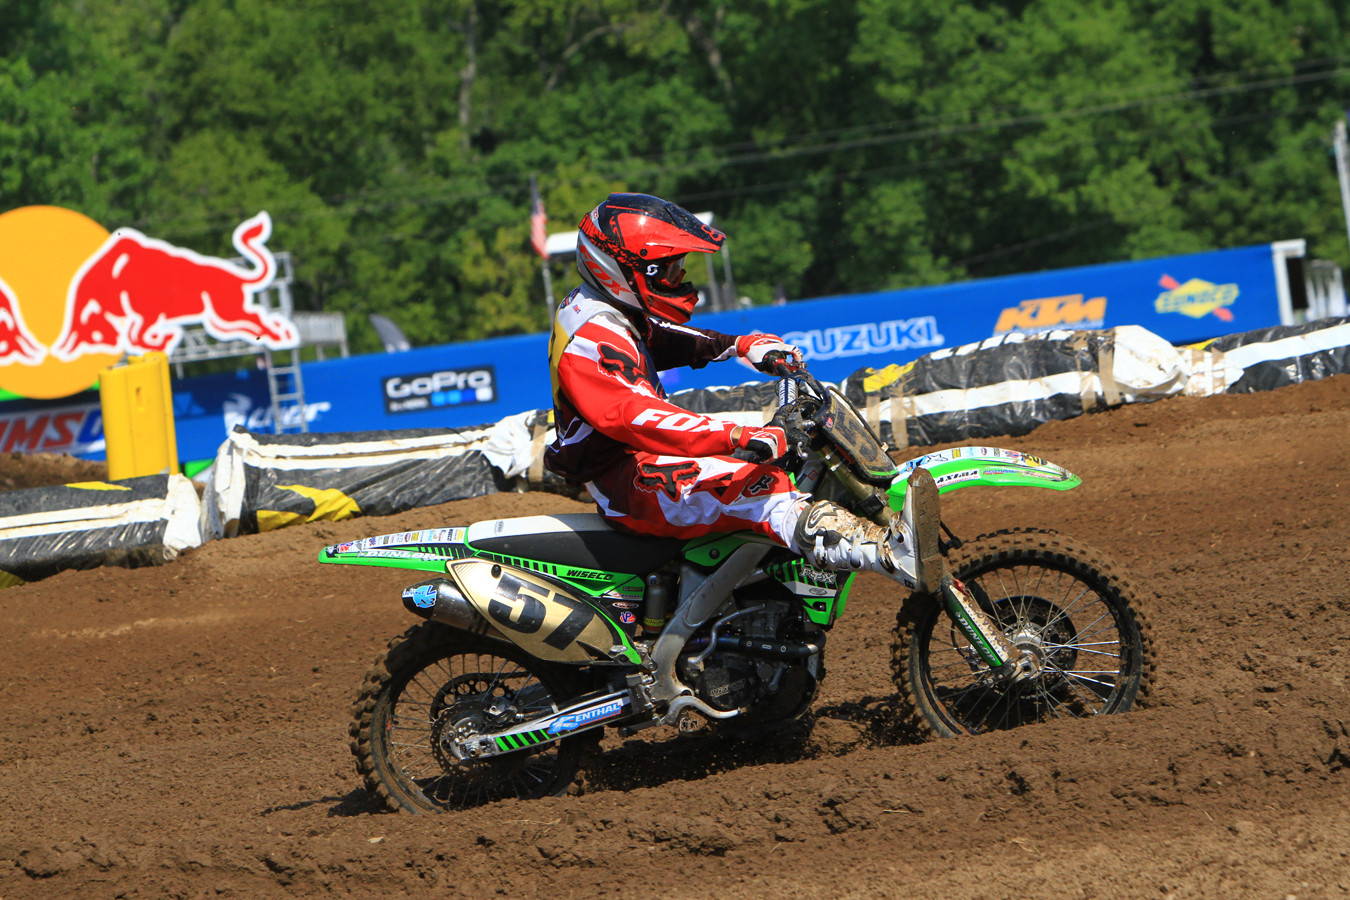 Dave Semics - Day 3: 2012 Red Bull AMA Amateur National Motocross Championships - Motocross Pictures - Vital MX